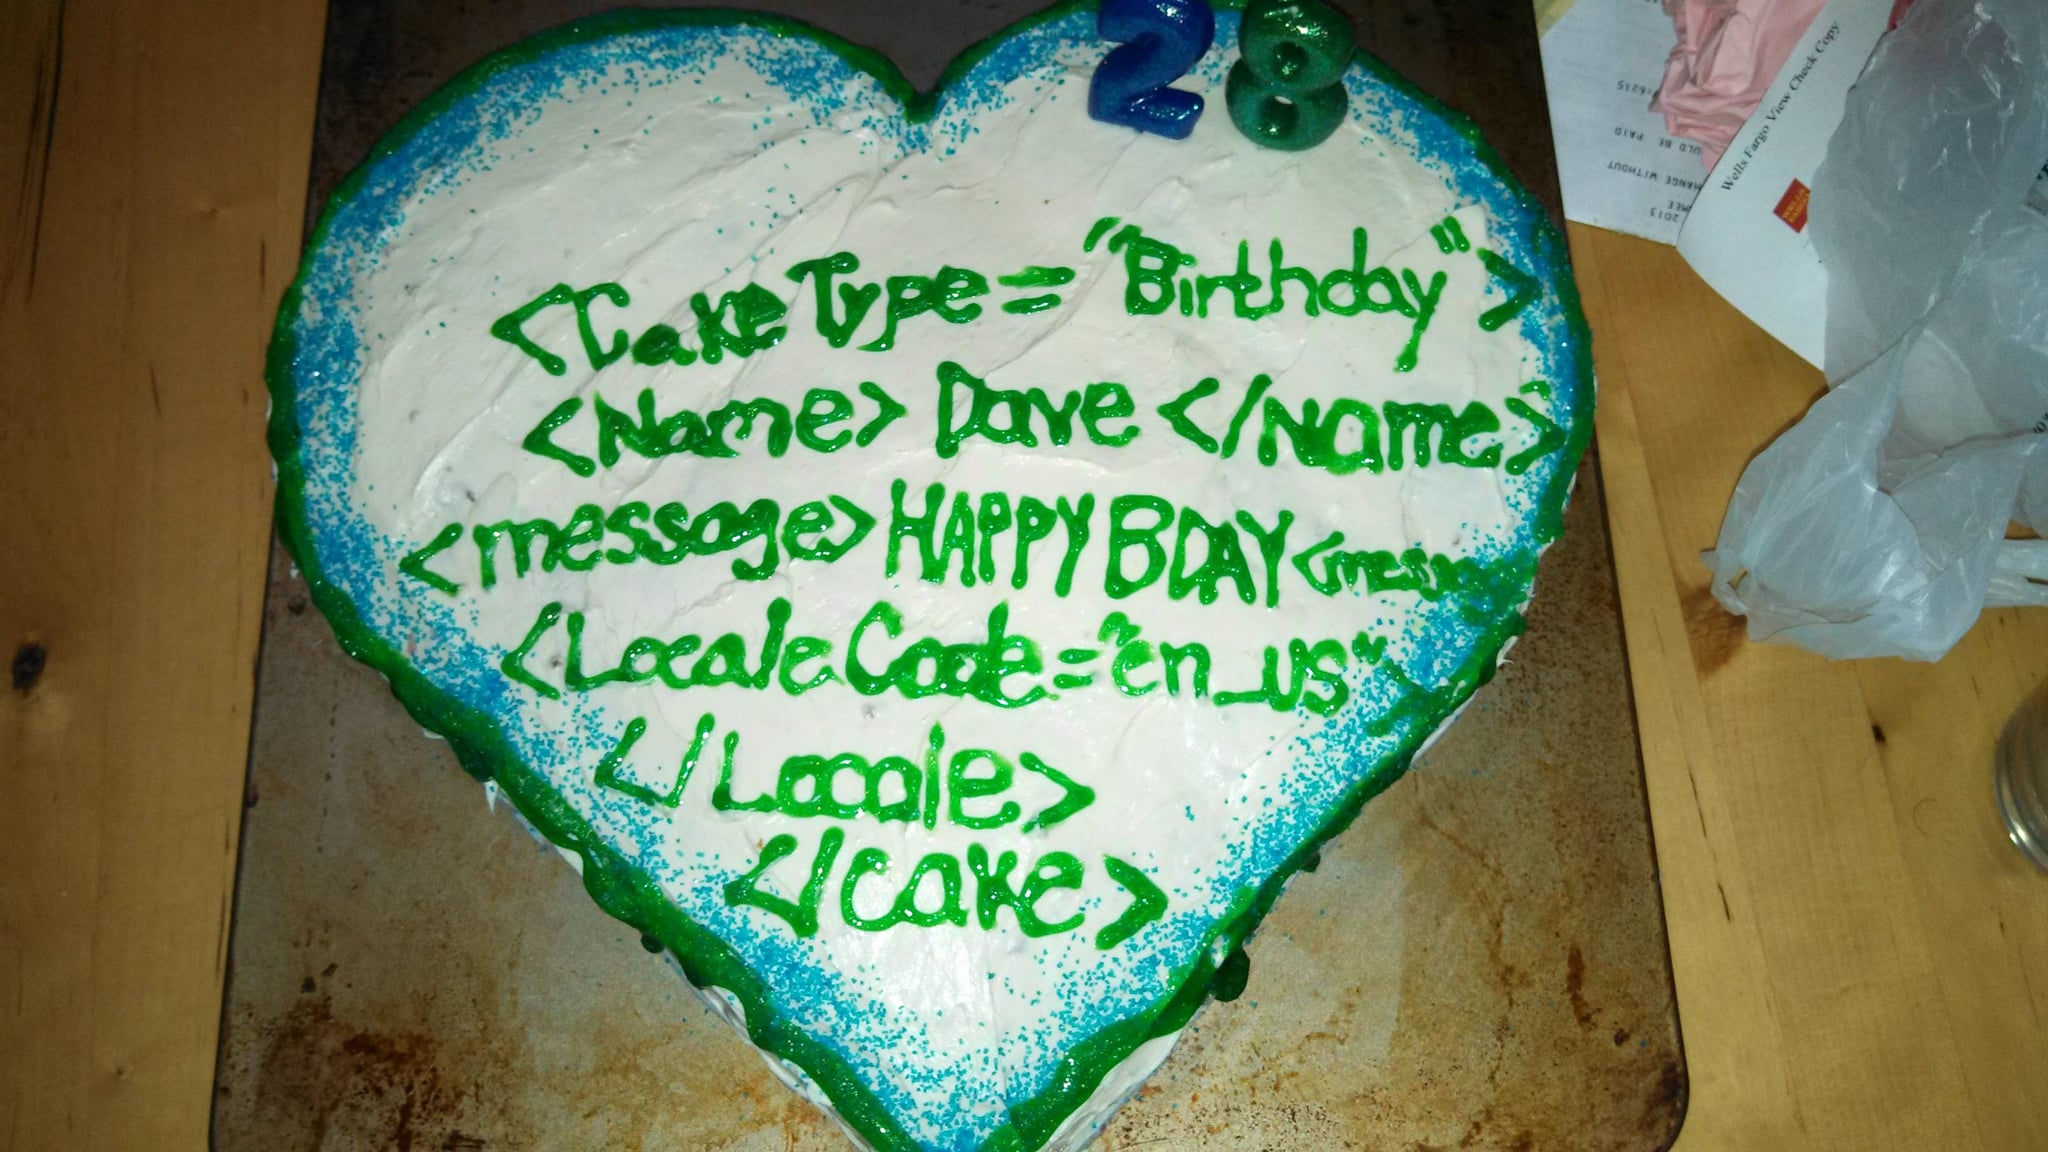 7. The Keeper Who Baked This Coding Cake